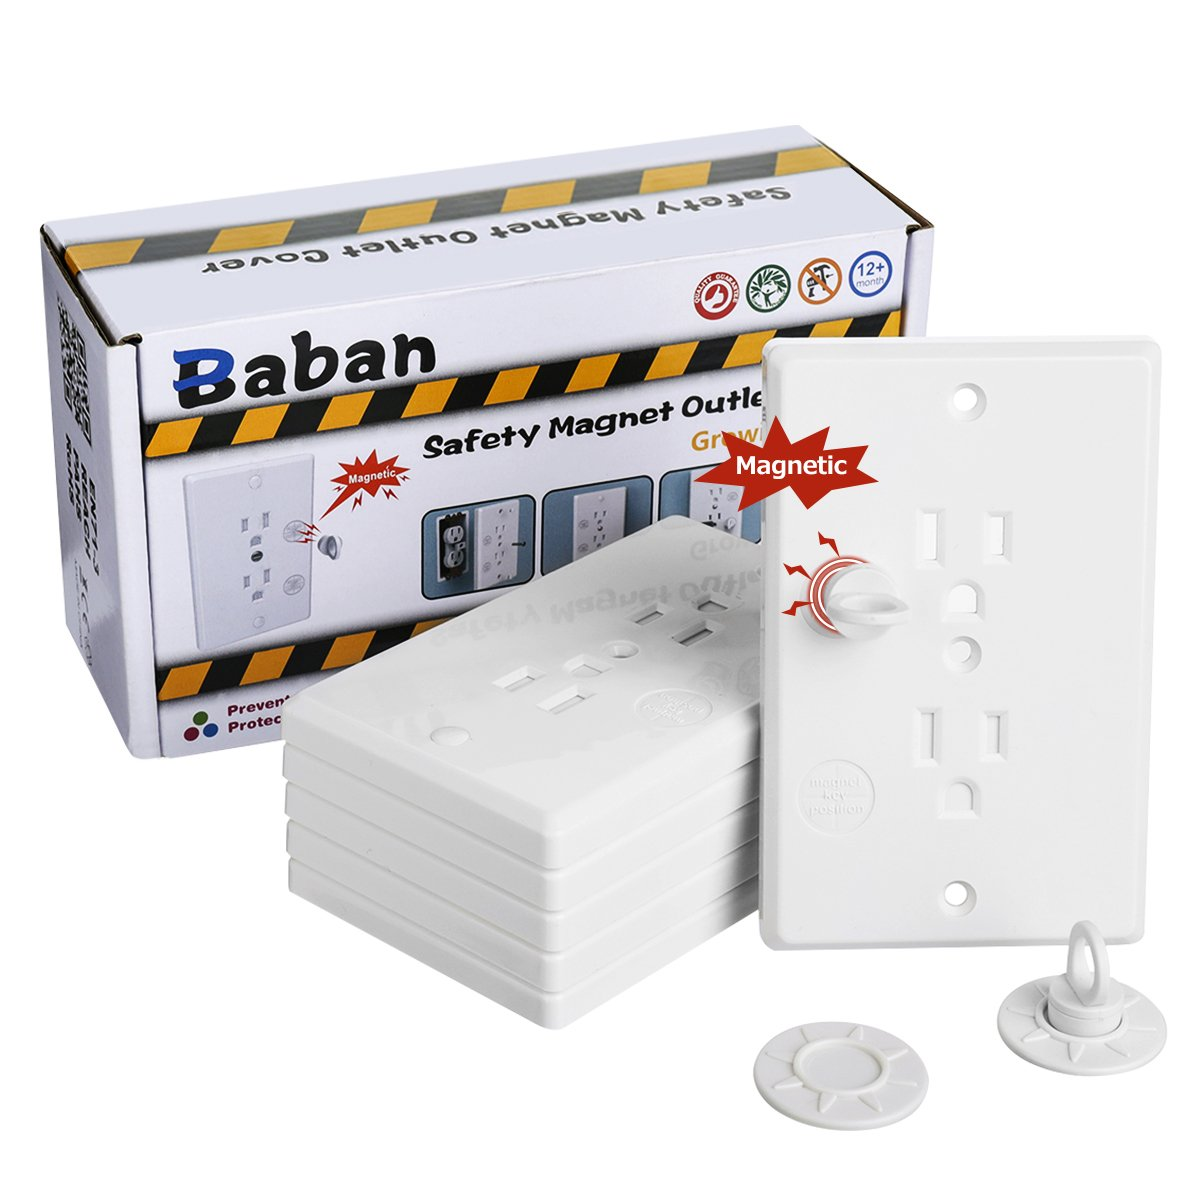 Baby Safety Outlet Cover, Baban Upgrade Baby Socket Cover Set with Magnetic Key, Universal Self-Closing Child Guards Socket Plugs Protector, Flame Retardant ABS, Standard US Regulation by Baban